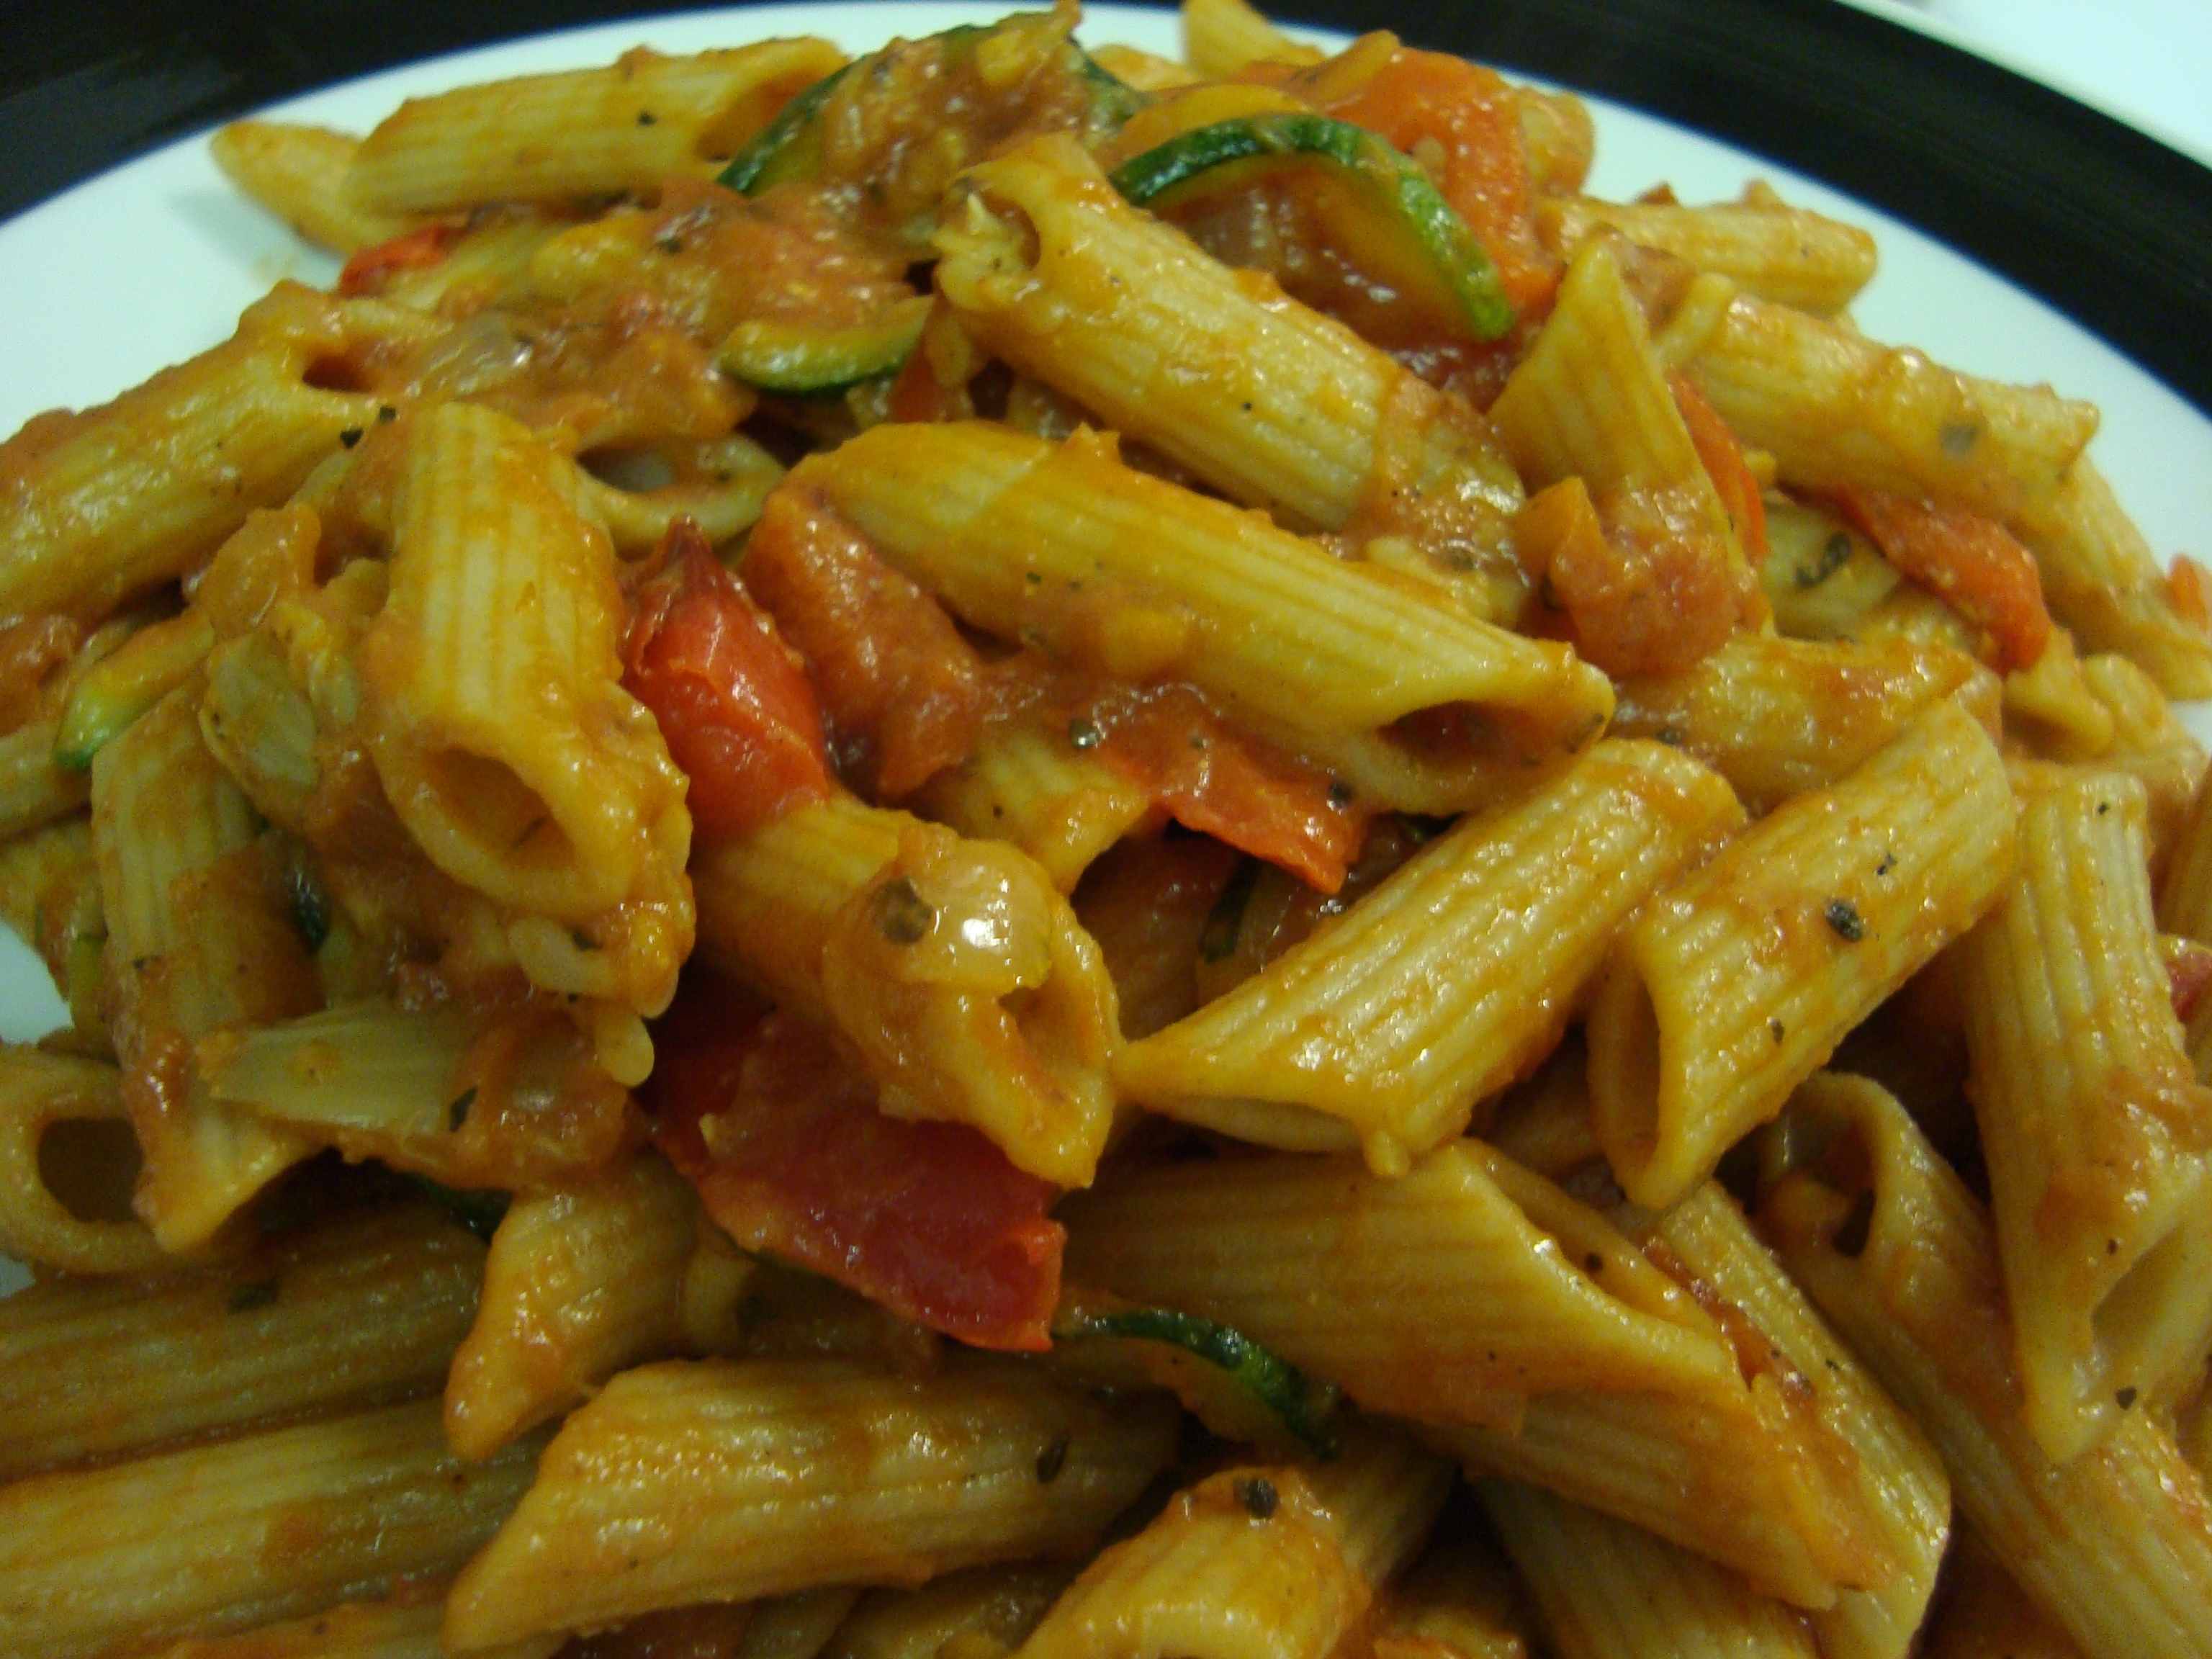 Another batch of this yummy pasta!